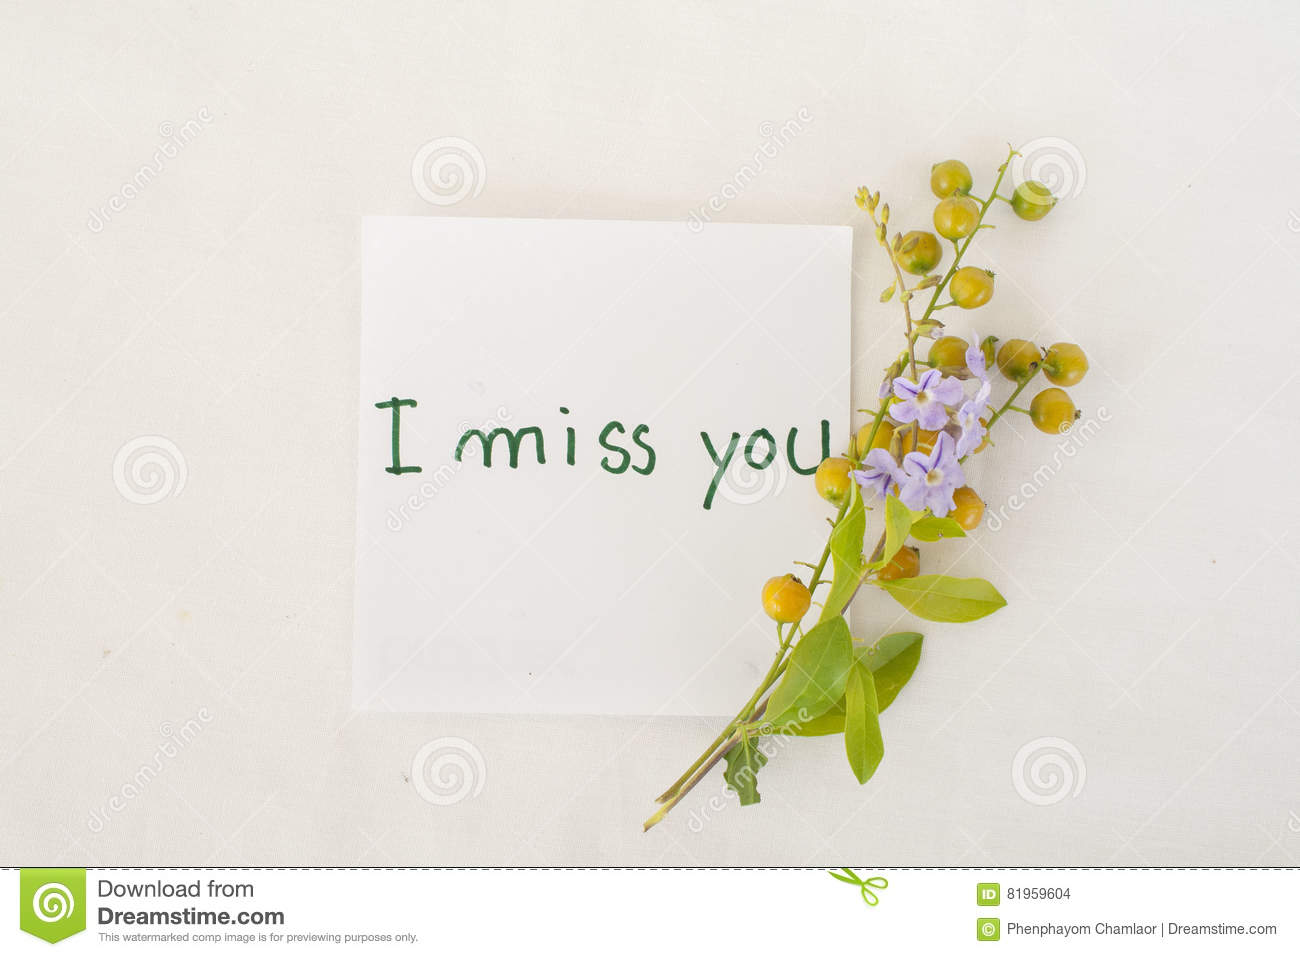 I miss you message card and grain flowers stock photo image of i miss you message card and grain flowers kristyandbryce Image collections